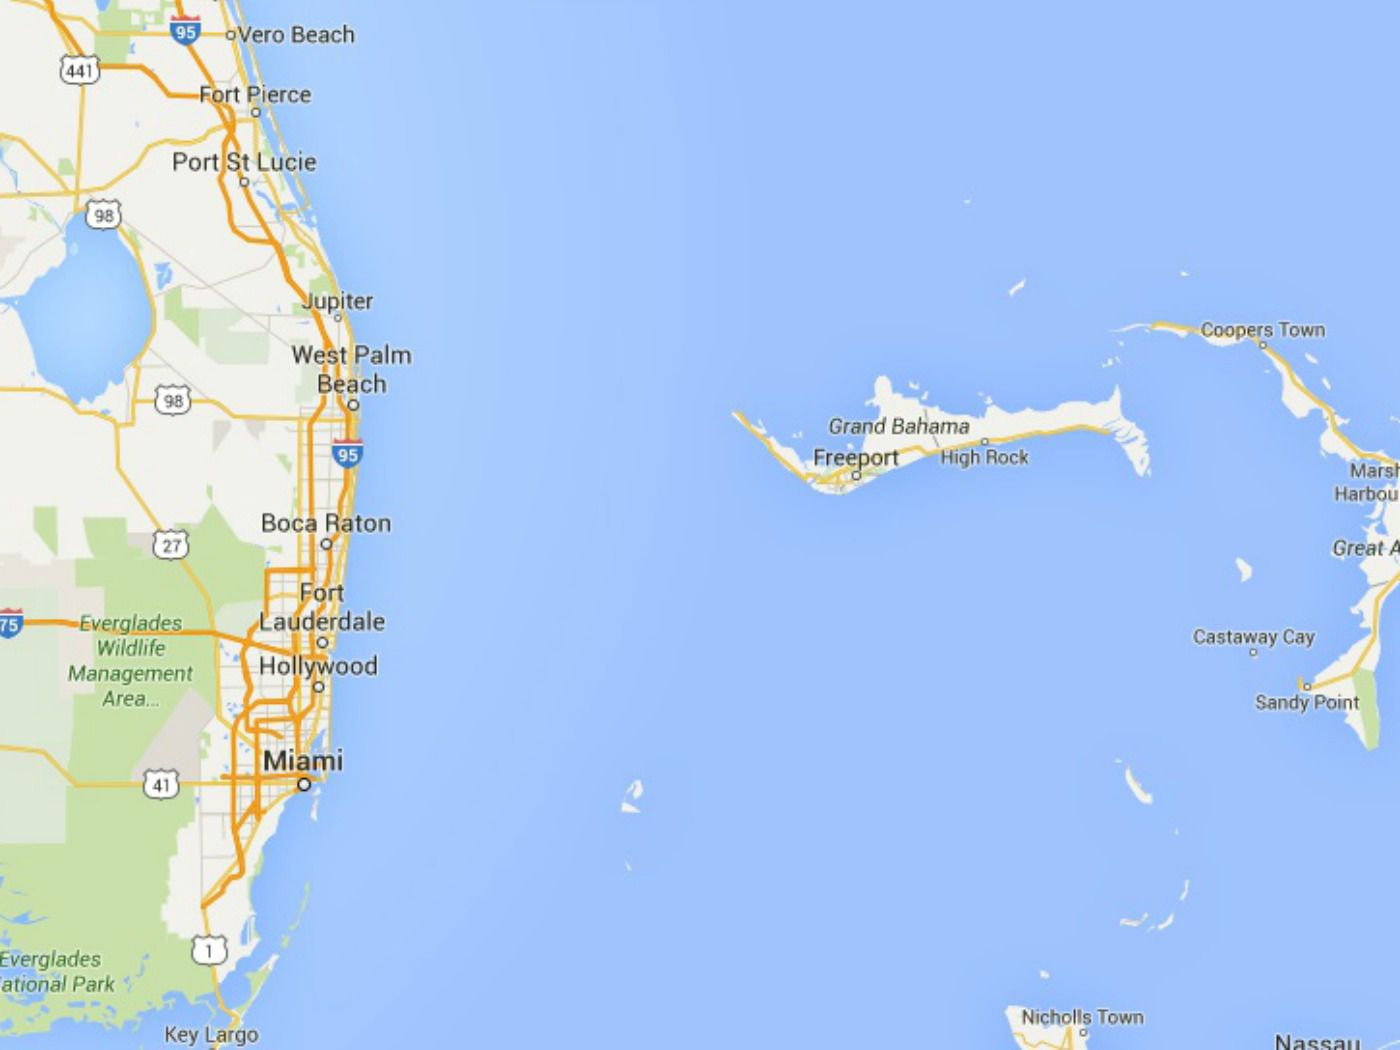 Maps Of Florida: Orlando, Tampa, Miami, Keys, And More - St George Island Florida Map